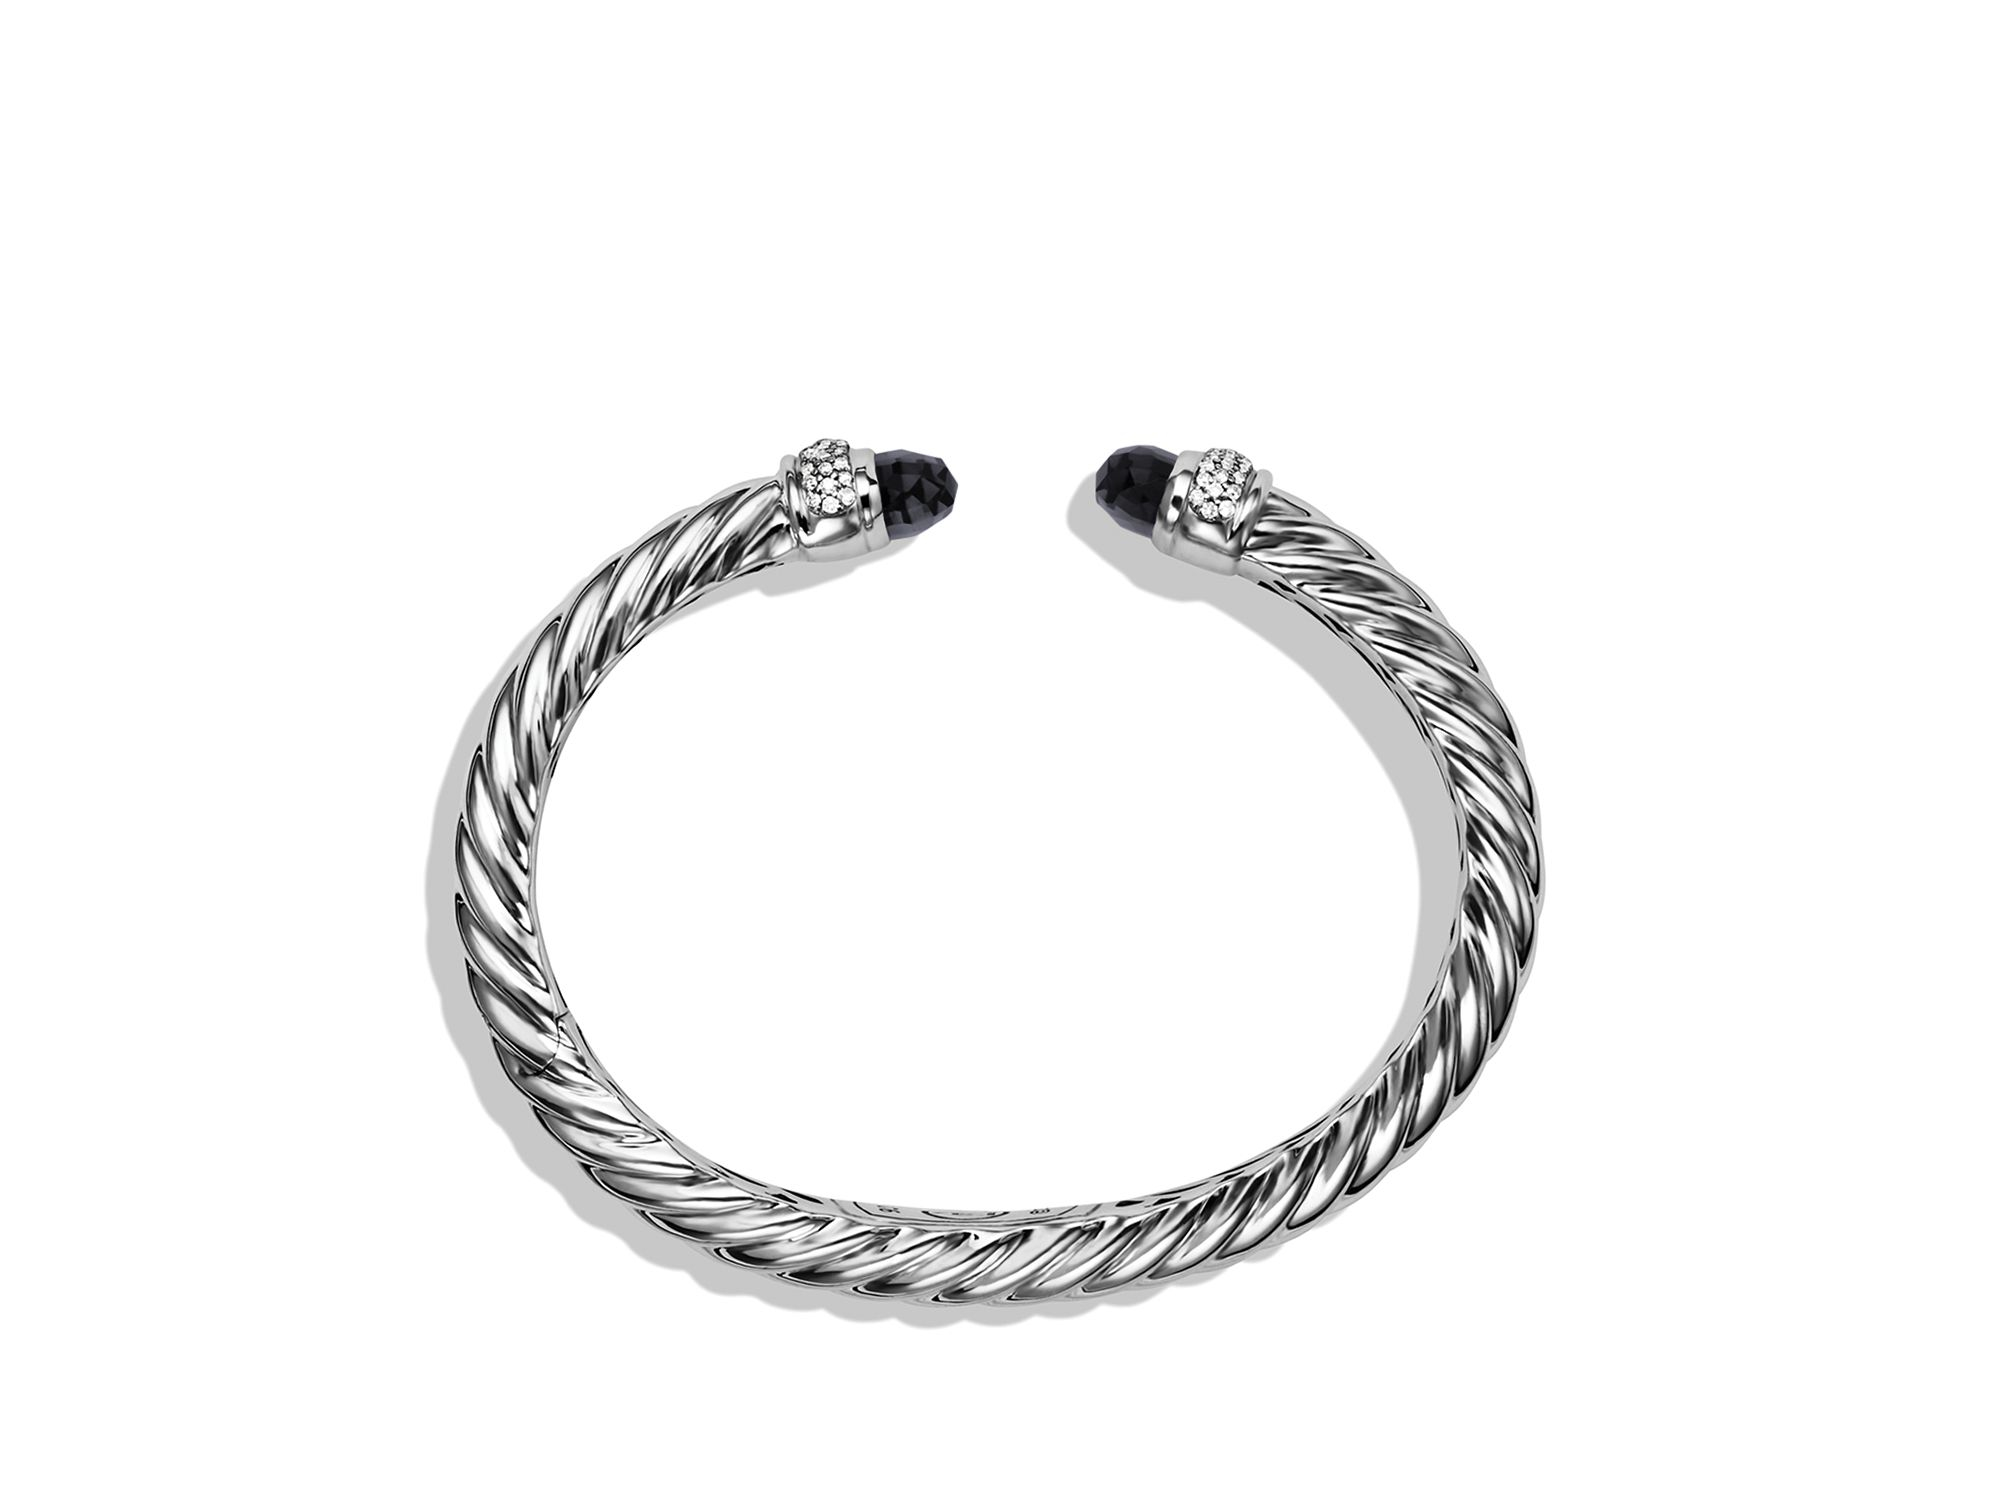 David yurman replica cable bracelets best bracelet 2018 for David yurman inspired bracelet cable